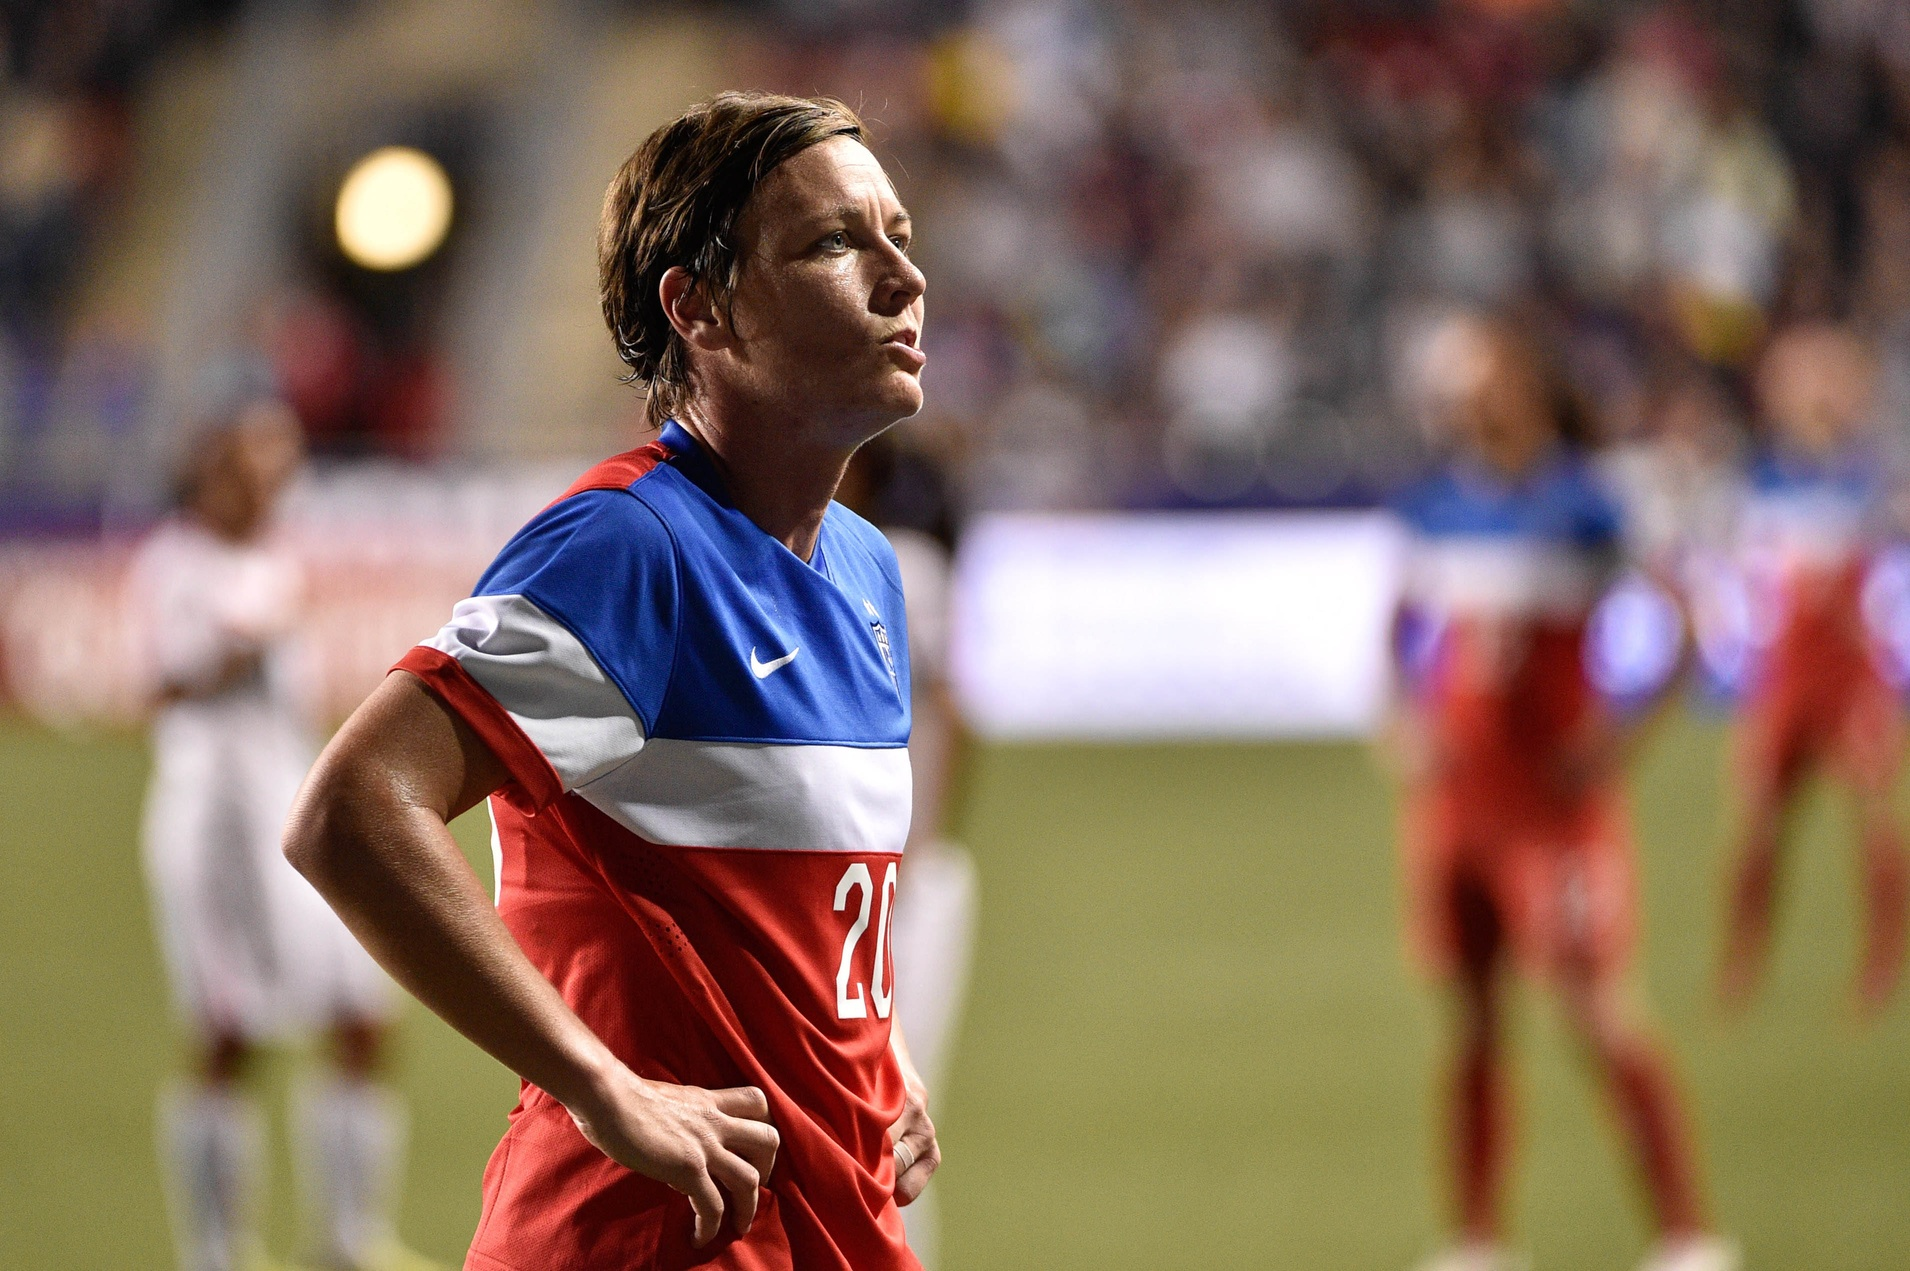 Will this year's Algarve Cup be better than last year's tournament for Abby Wambach and the USWNT? (USA Today Images)